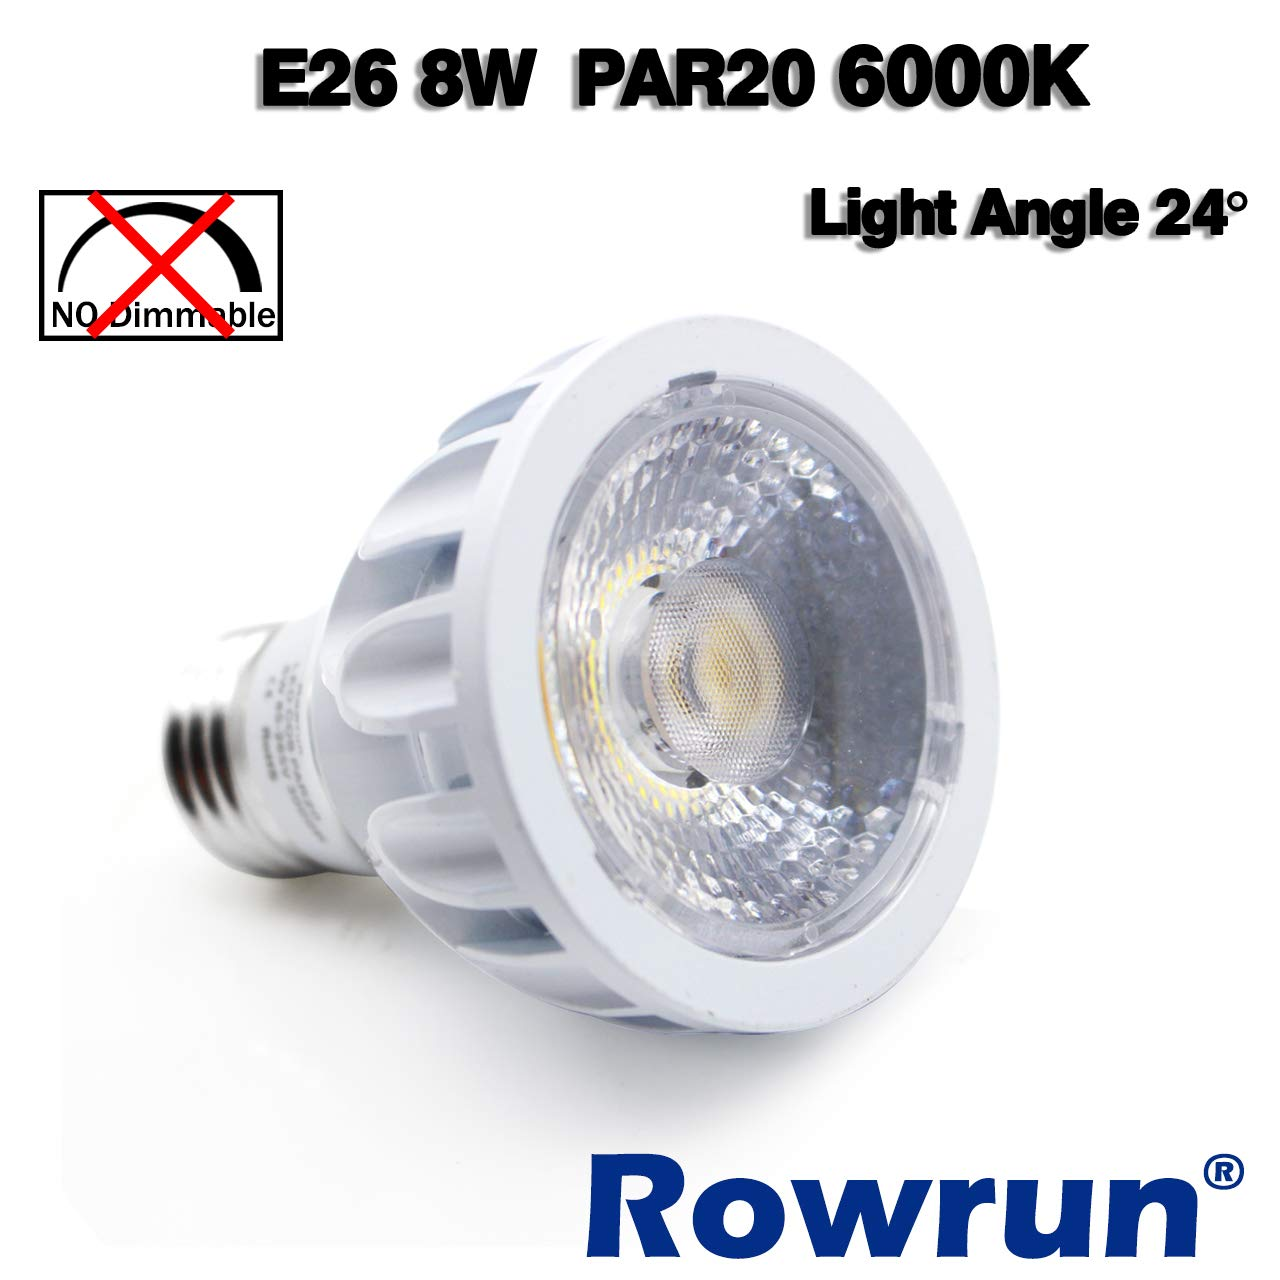 E26 Medium Base COB Spot Light 24/° Beam Angle High CRI 85+ 800LM AC 85-265V Flood Lamp 2-Pack by Rowrun PAR20 LED Bulb 3000K Soft White Non-Dimmable 8W 75 Watts Equivalent